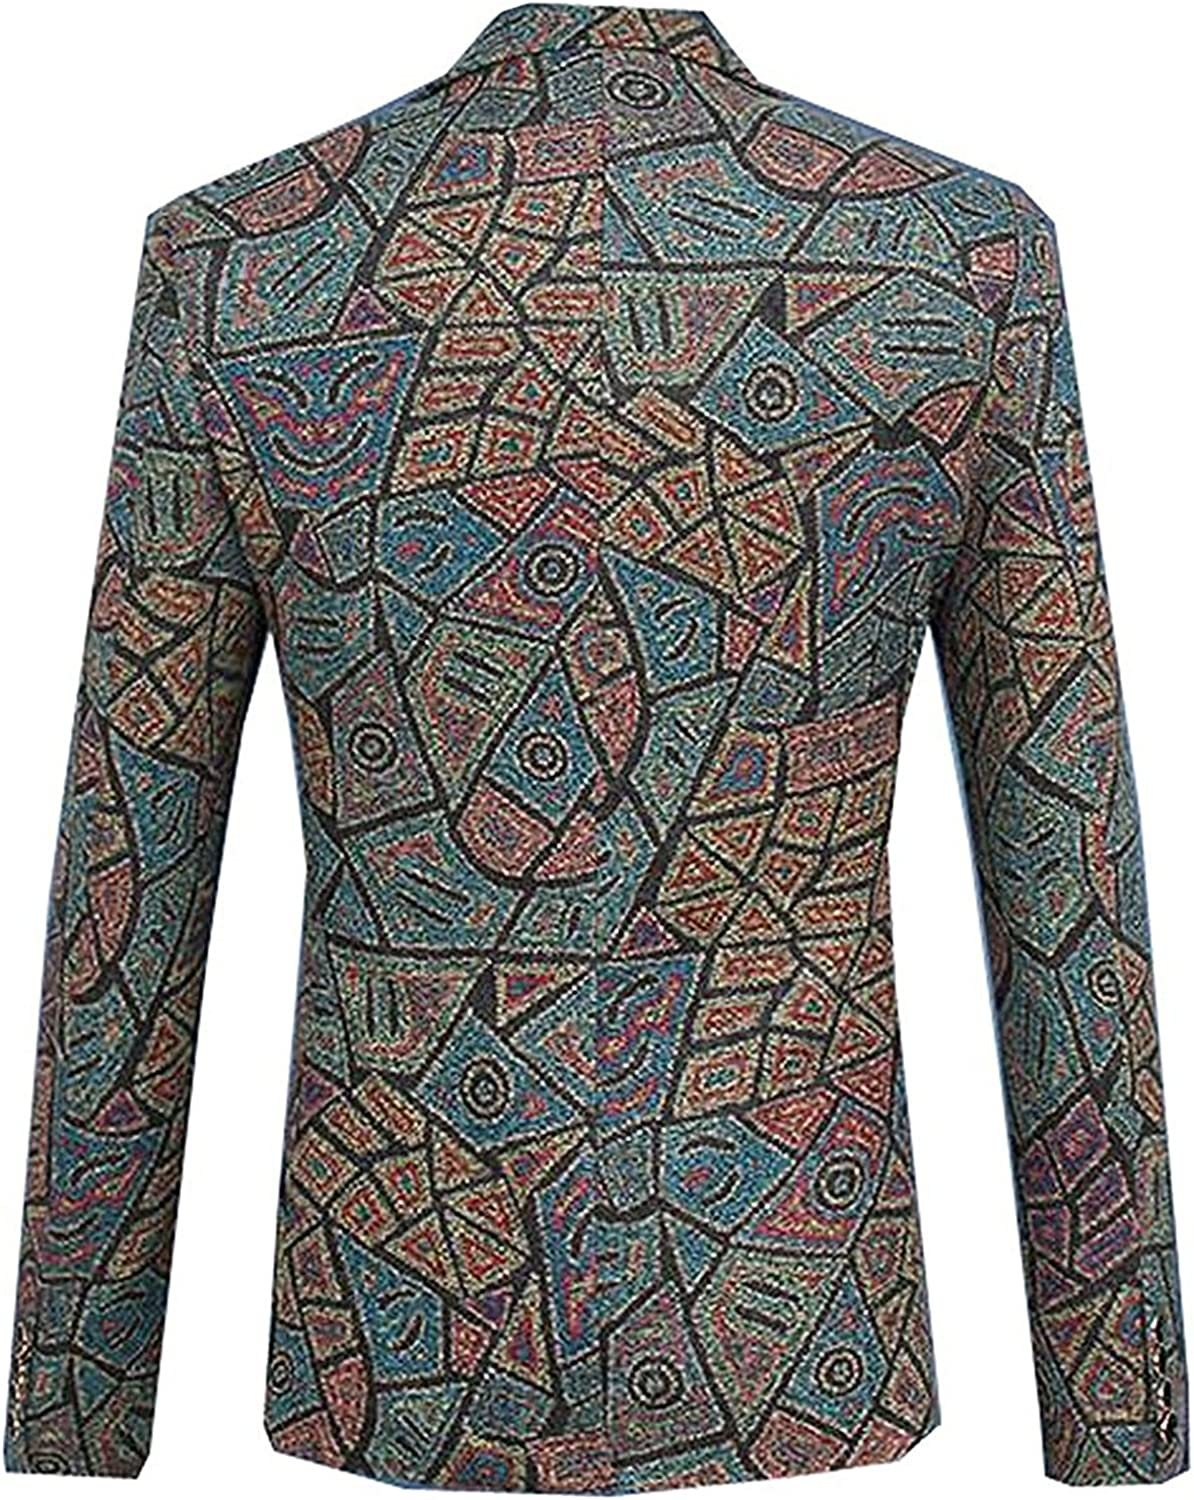 Rising ON Mens Fashion Floral Printed Slim Fit Blazers Jackets Coats